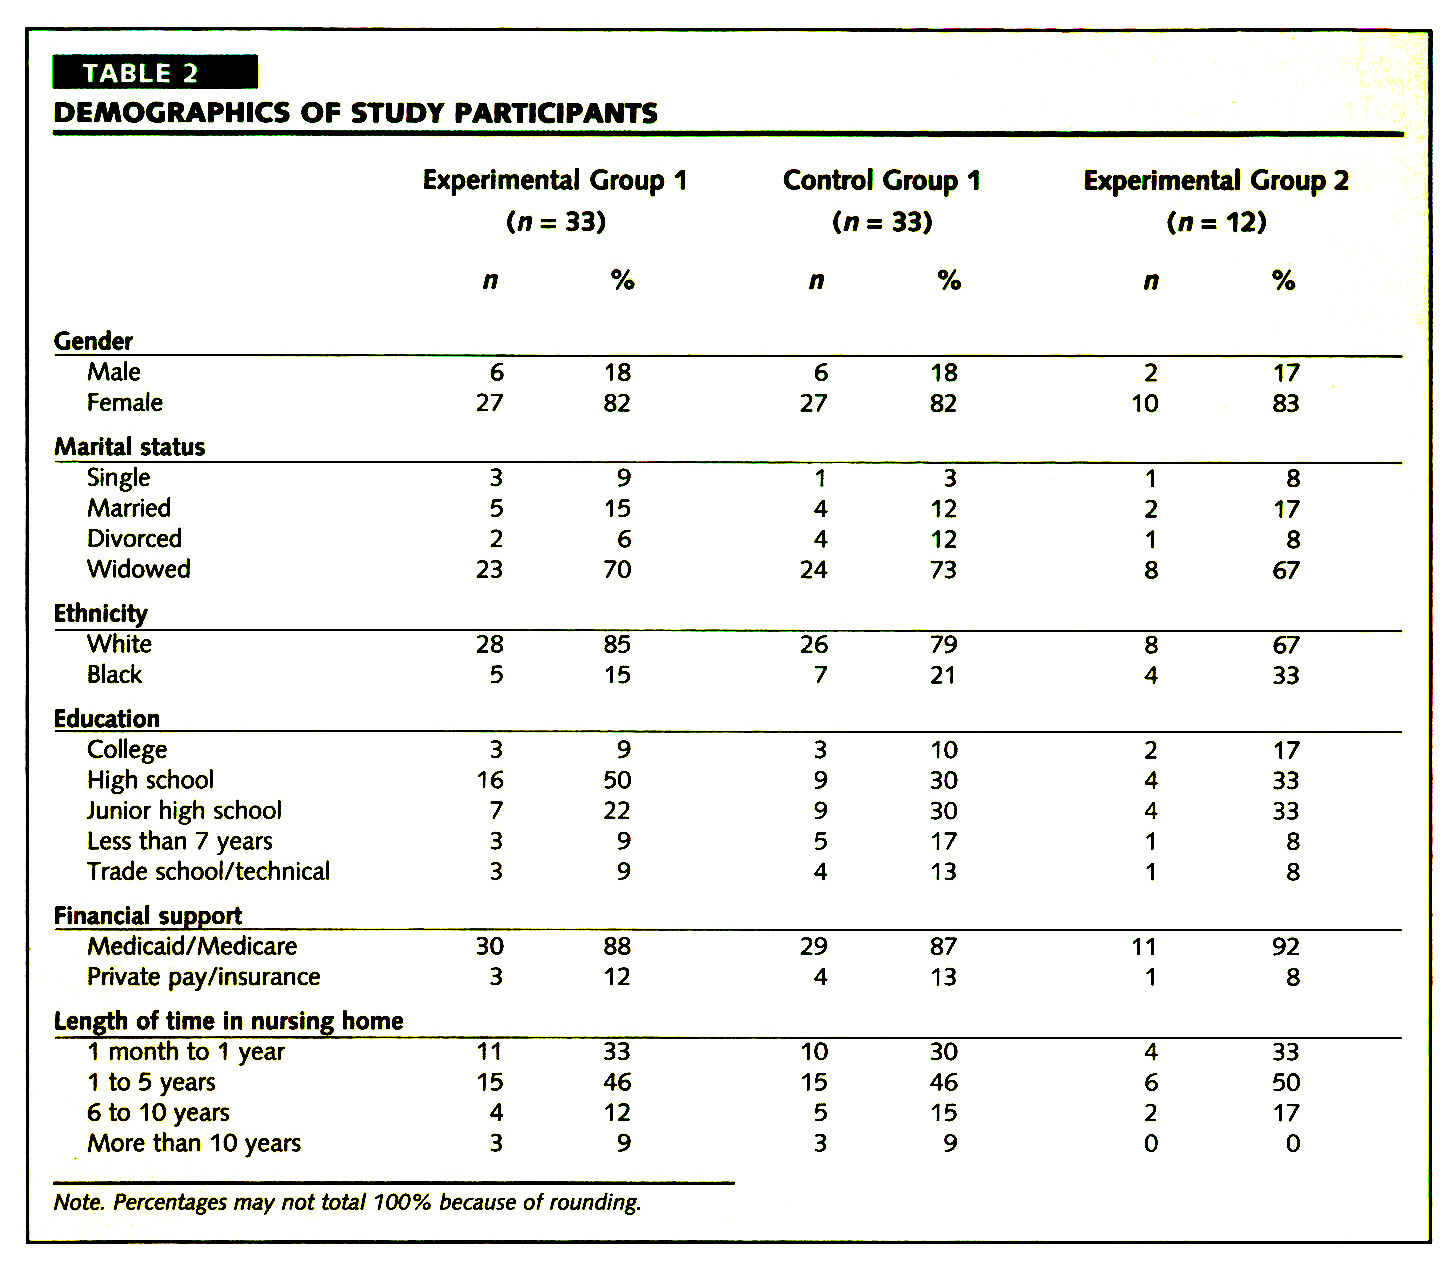 TABLE 2DEMOGRAPHICS OF STUDY PARTICIPANTS